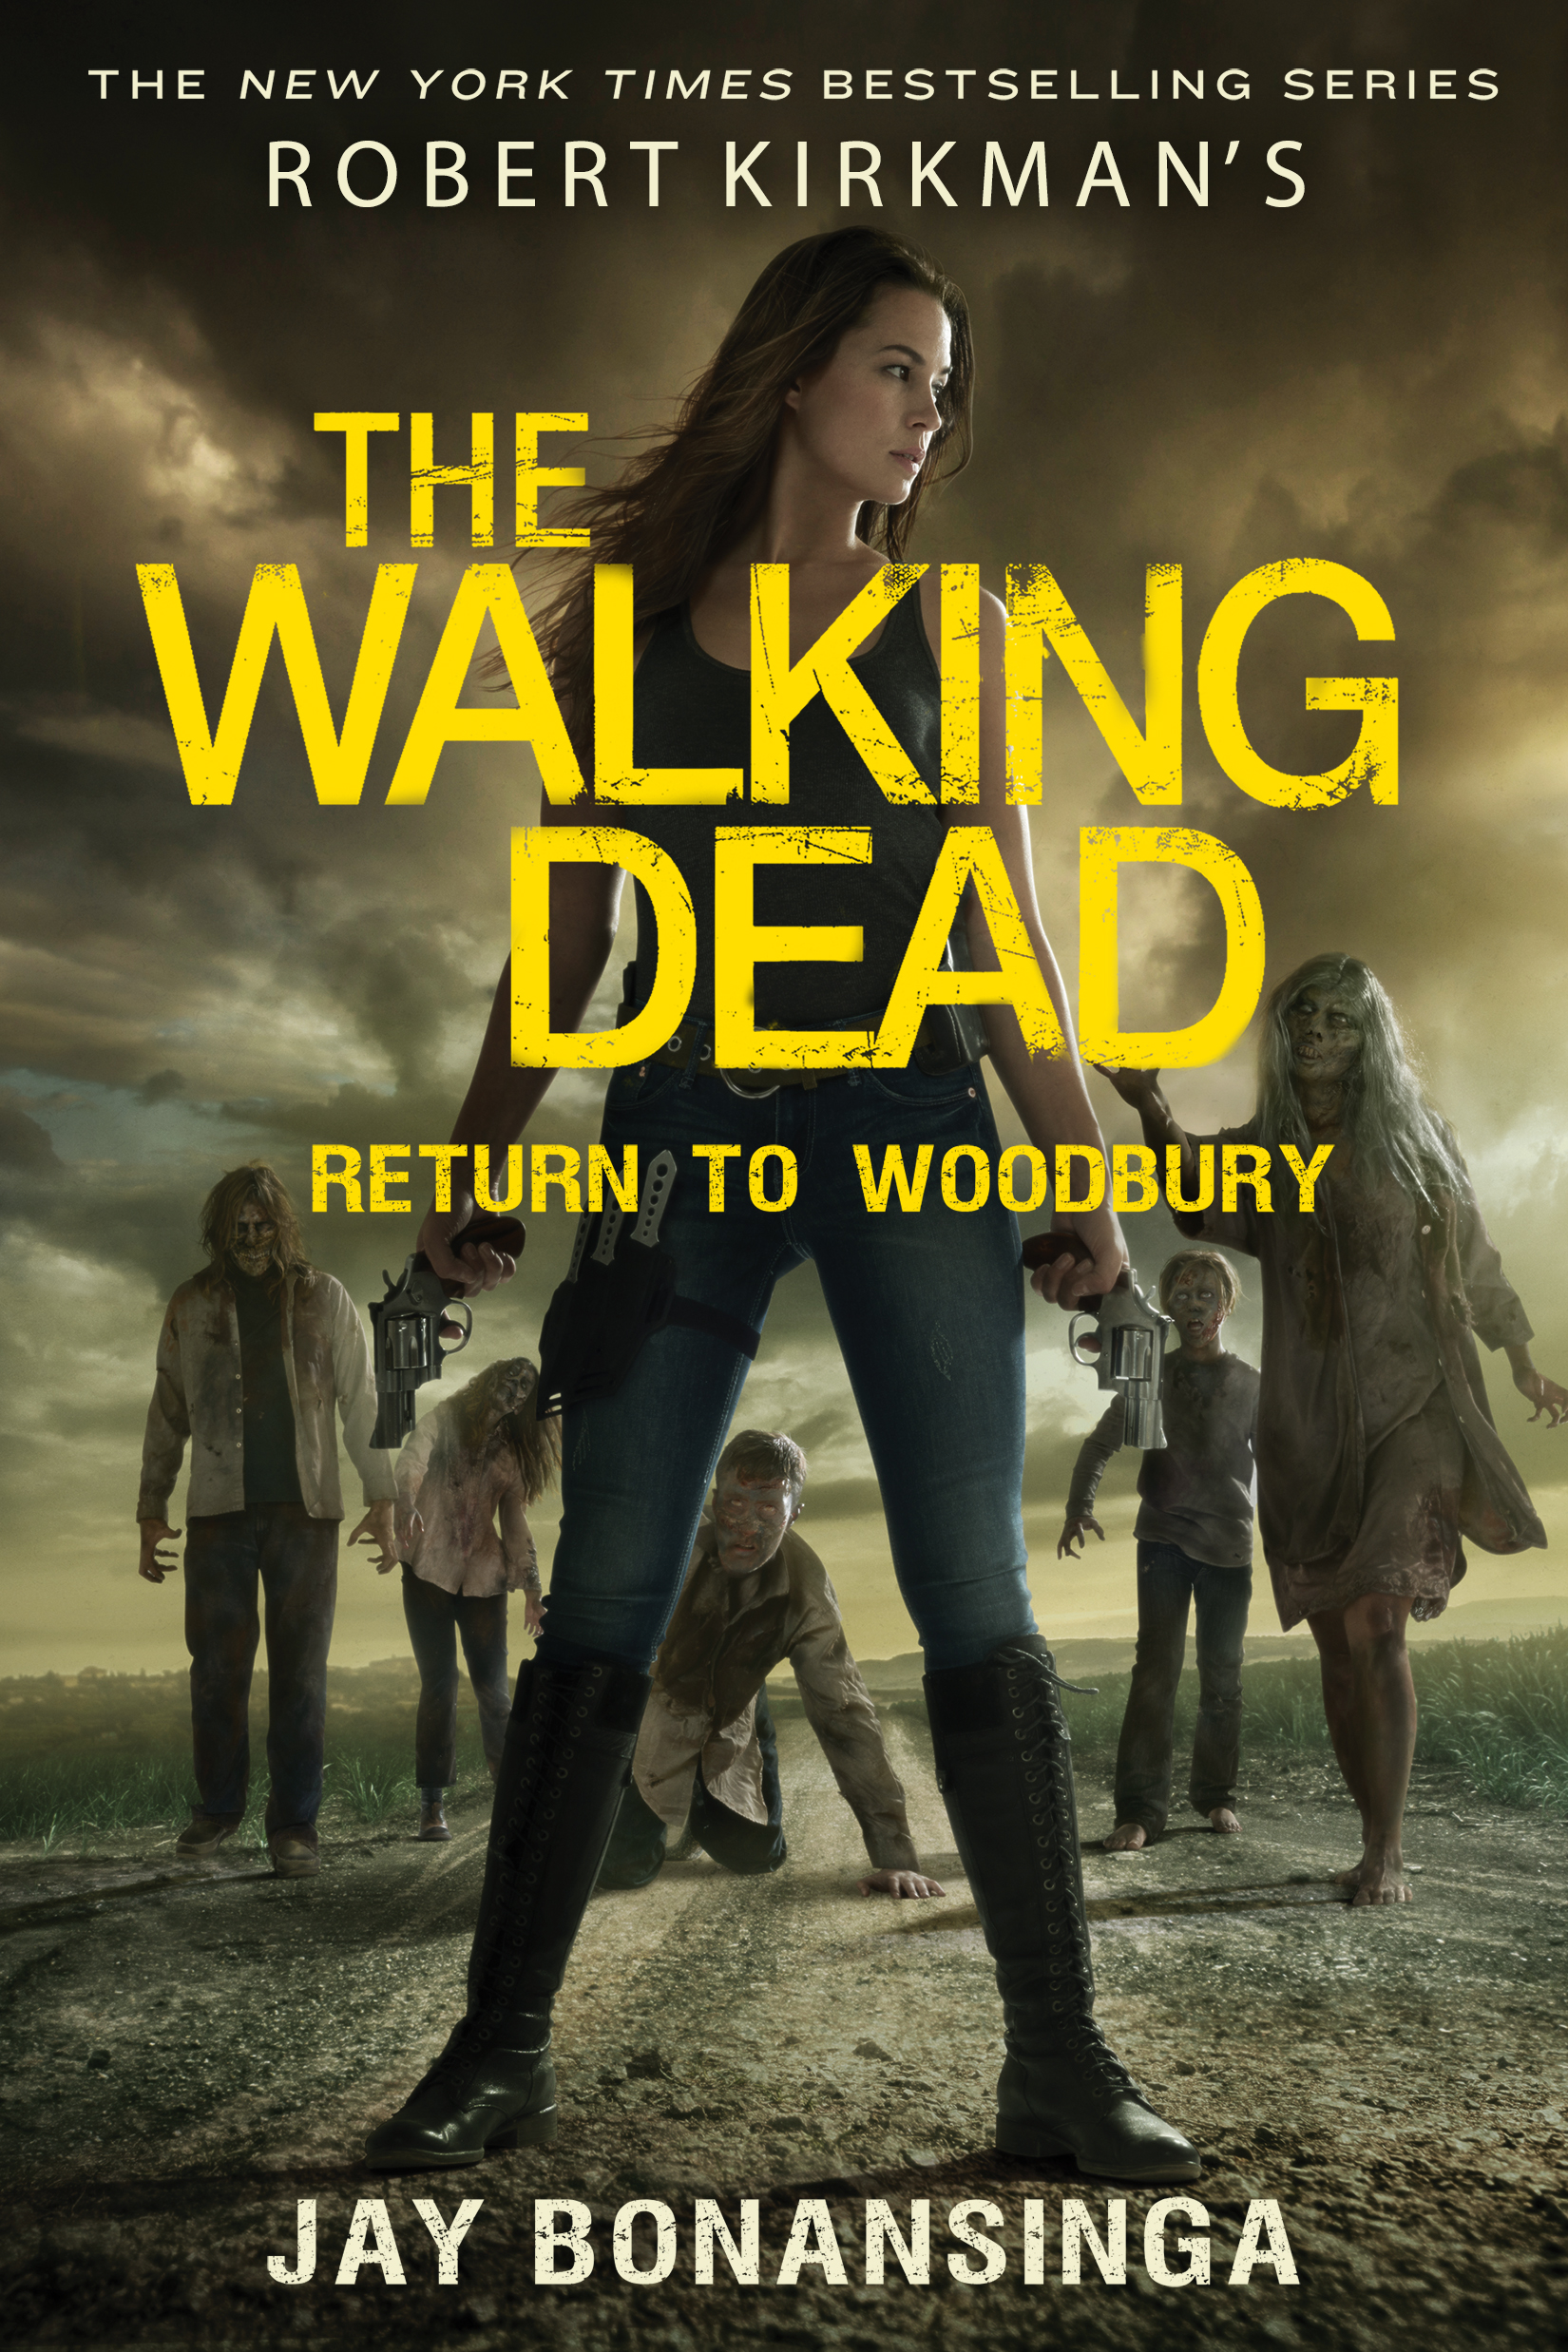 Friday Reads: The Walking Dead: Return to Woodbury by Jay Bonansinga